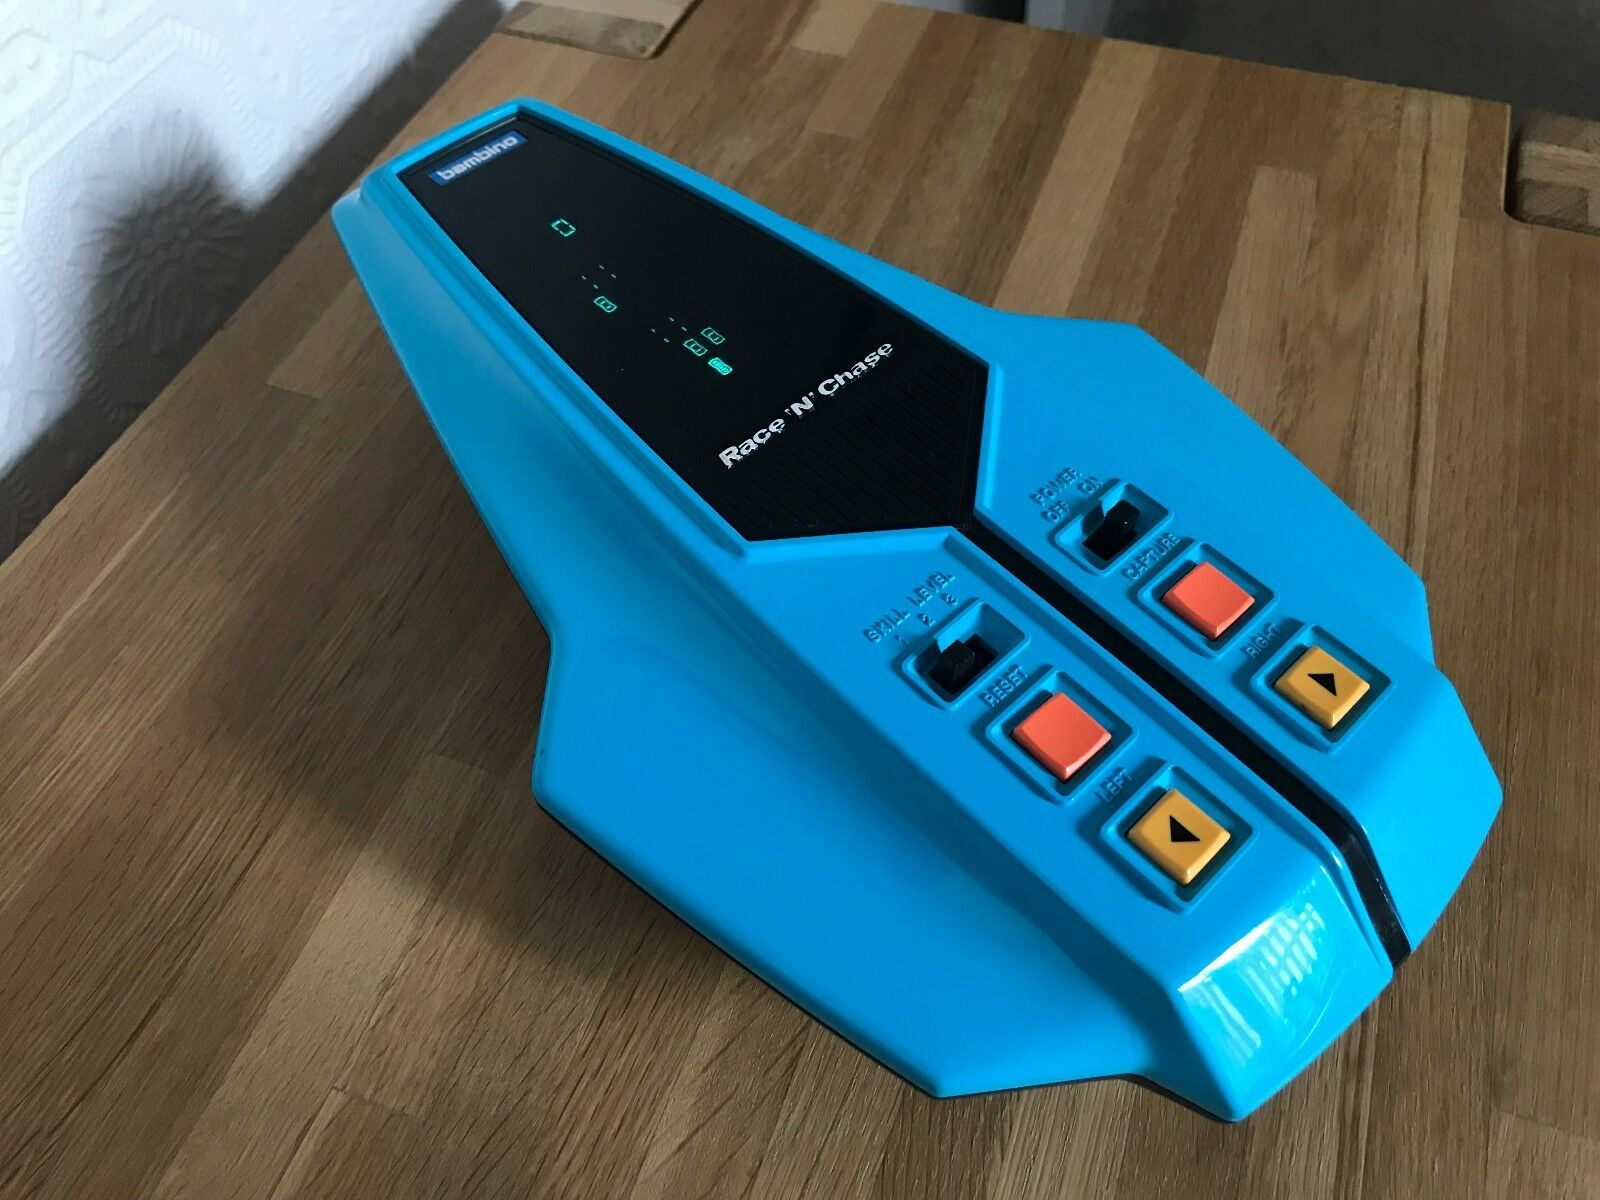 Bambino Race N Chase Vintage 1982 VFD Handheld Electronic Game - Super Condition